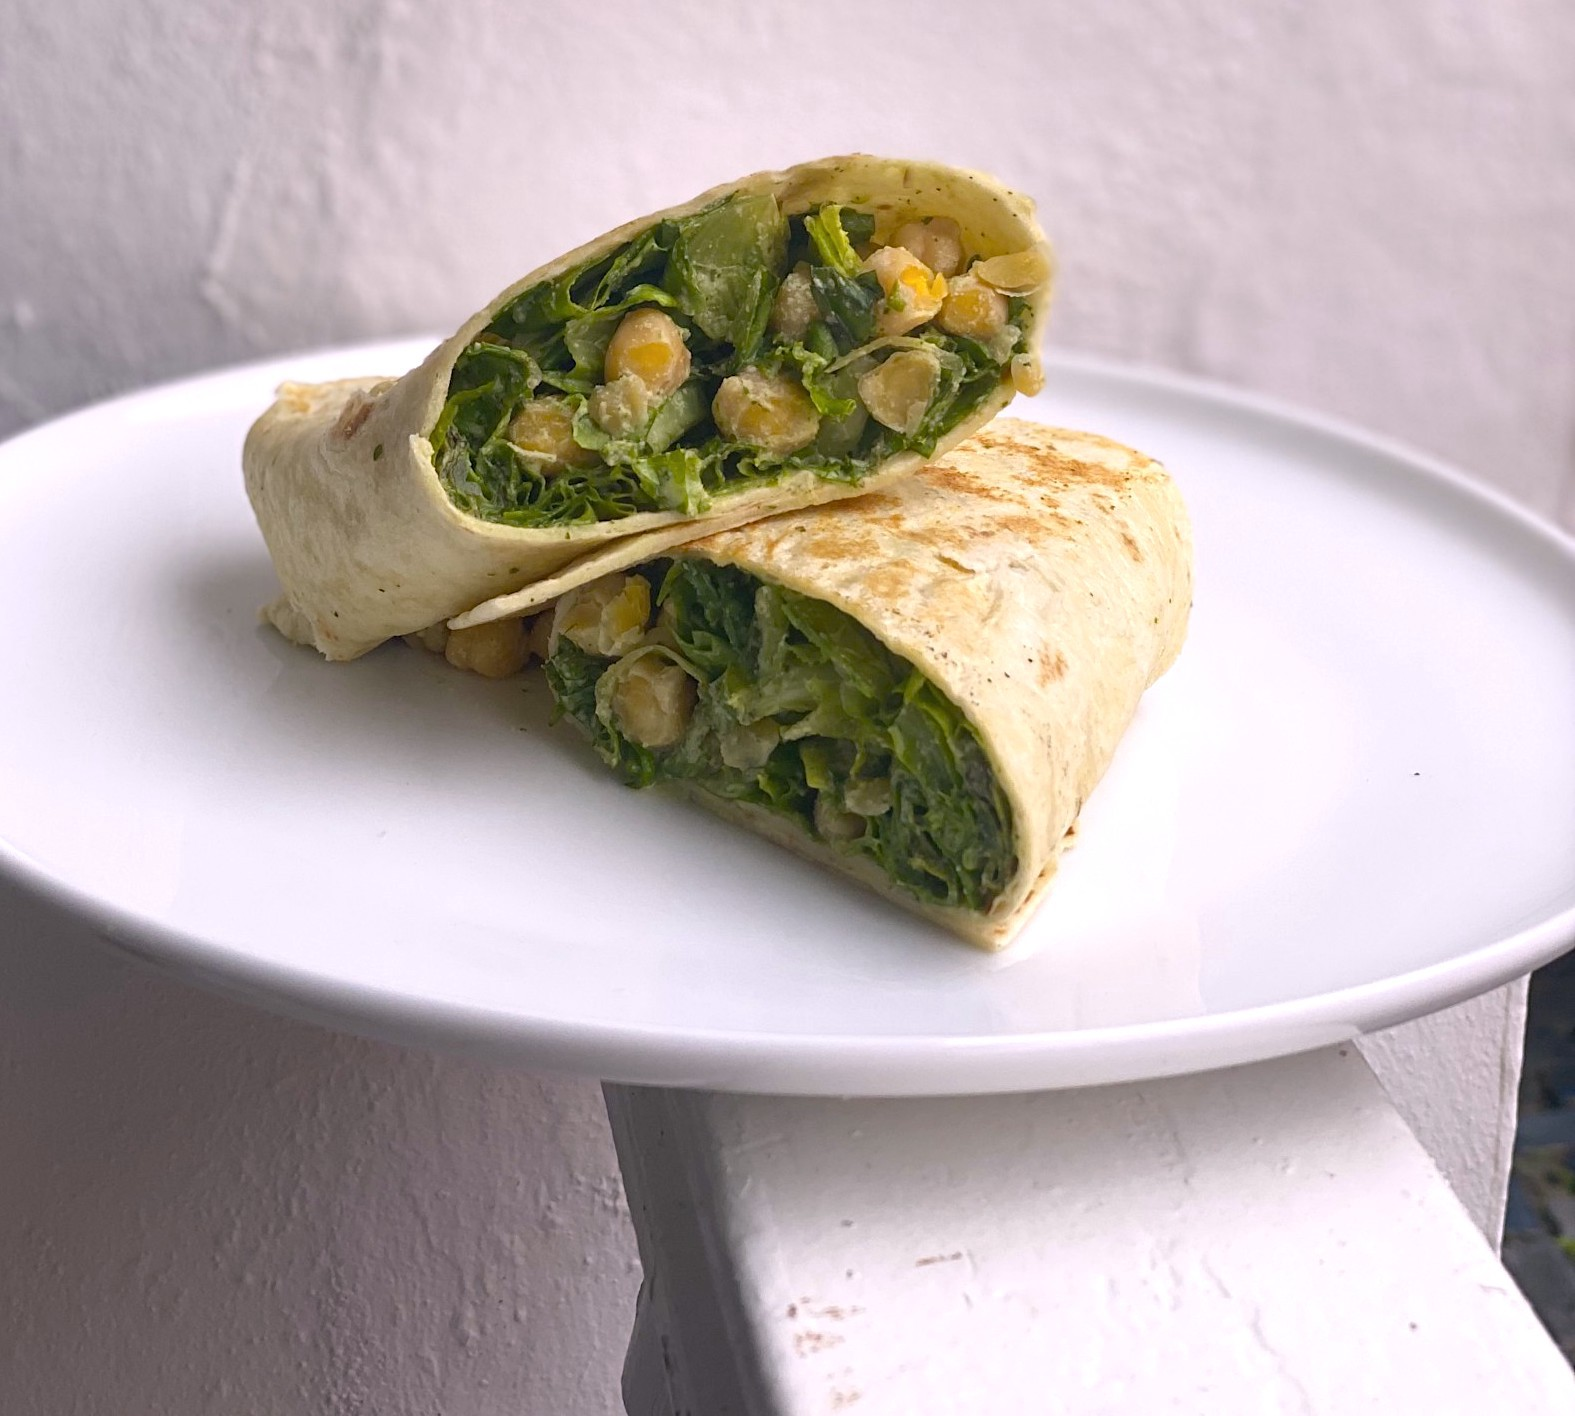 Chickpeas and lettuce shimmering with a creamy caesar dressing, stuffed into a large tortilla folded wrap-style.